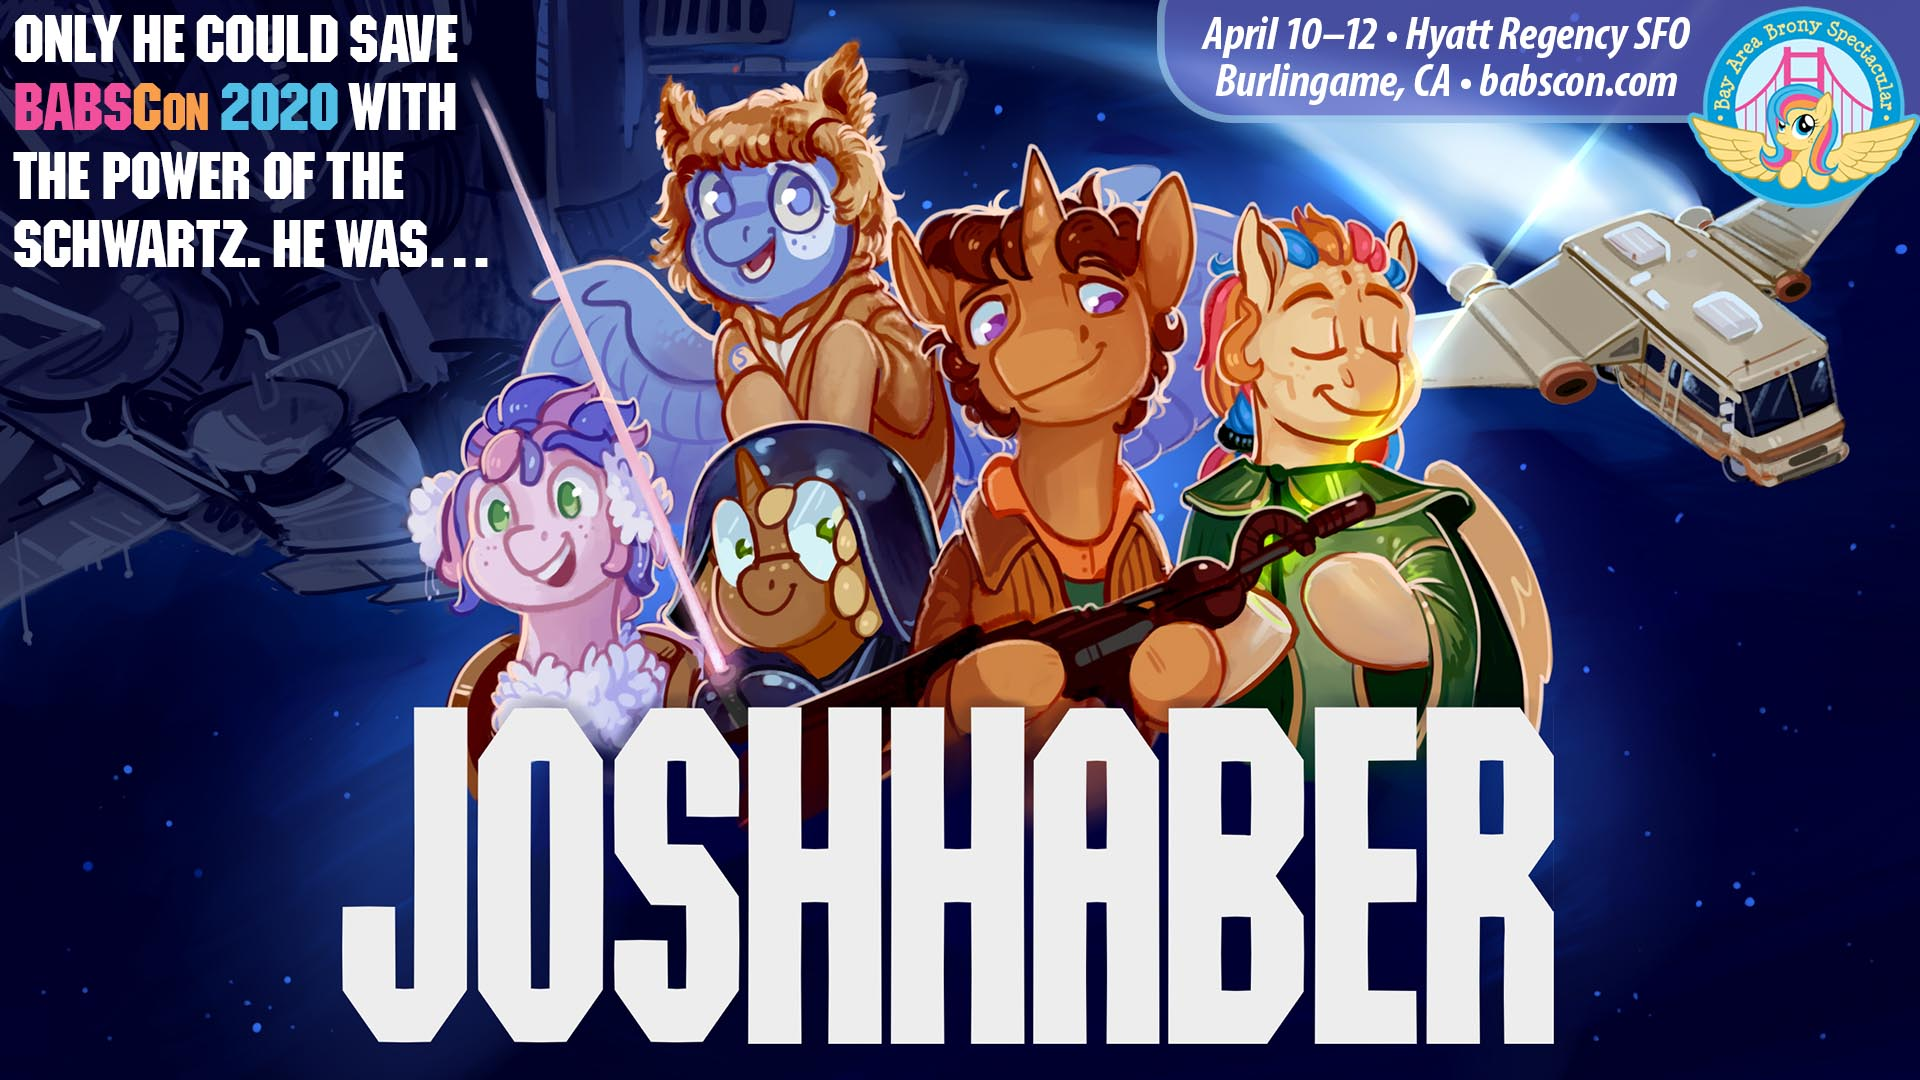 BABSCon Gets On the (Space)Ball with Josh Haber!